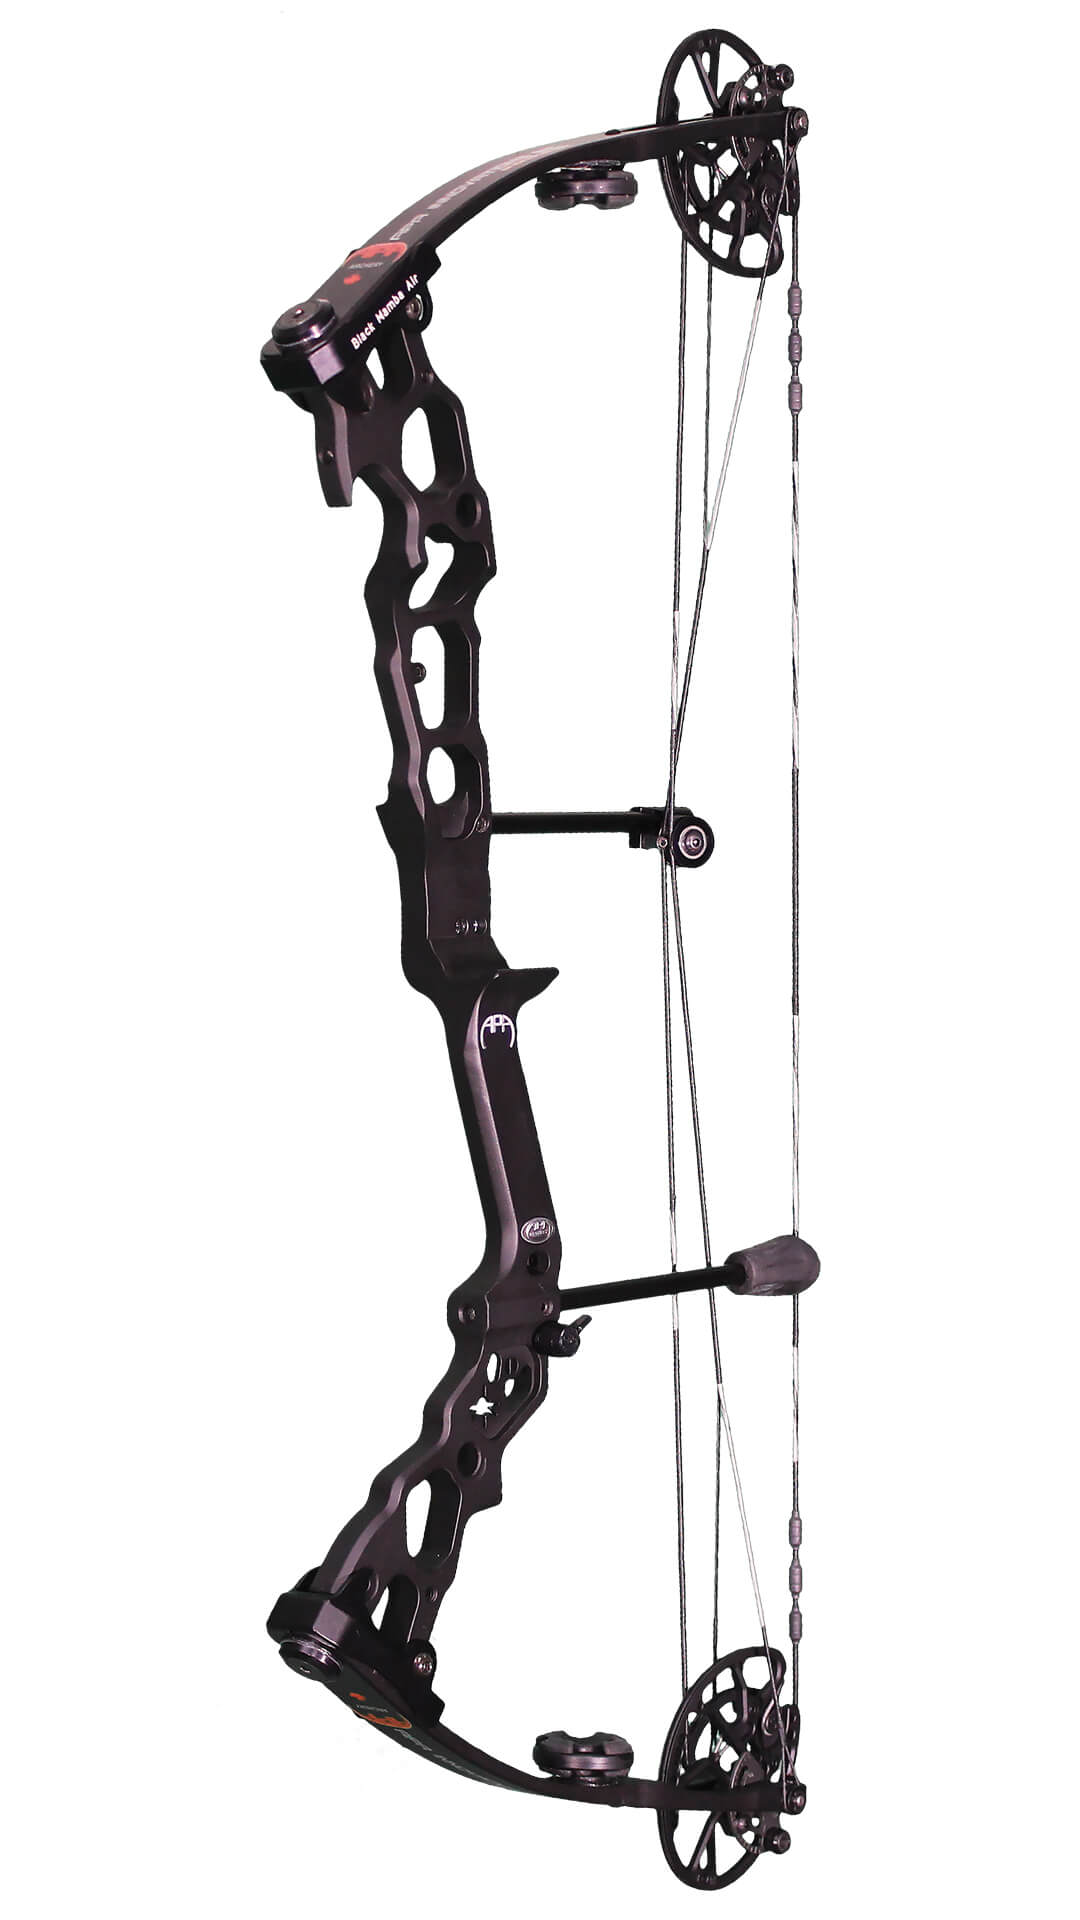 APA Black Mamba Air Compound Bow